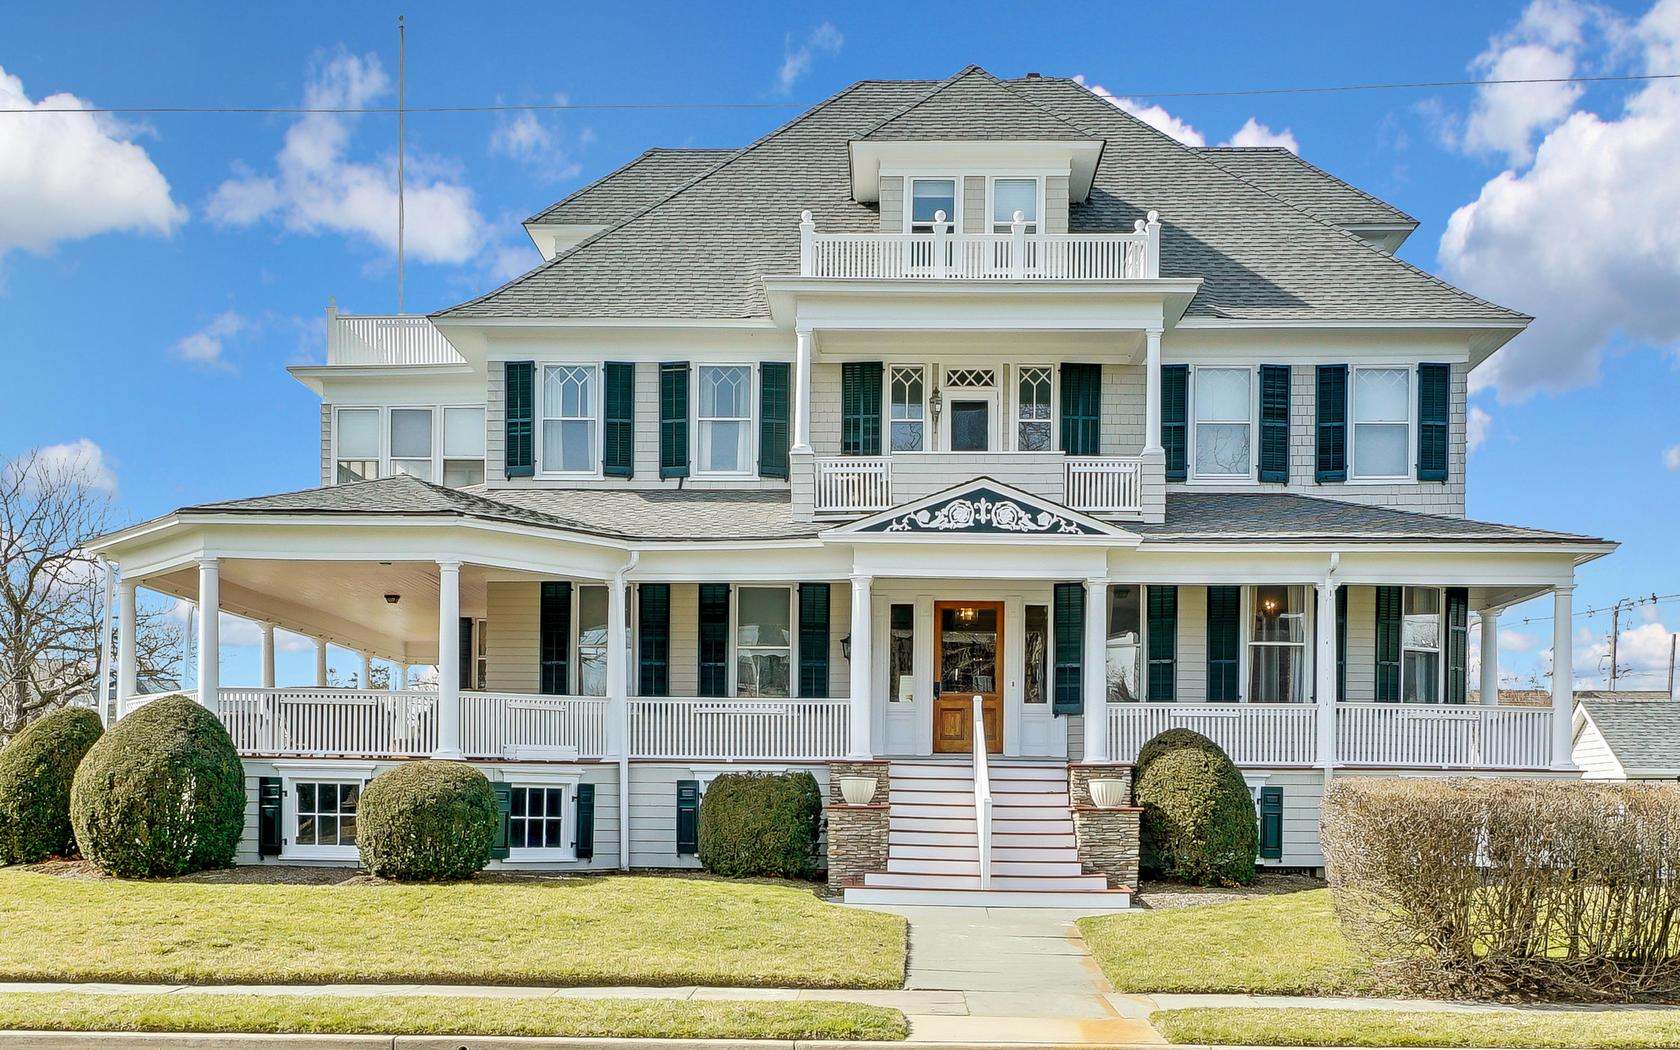 Villa per Vendita alle ore Luxurious Avon Colonial 302 Garfield Avenue Avon By The Sea, New Jersey, 07717 Stati Uniti